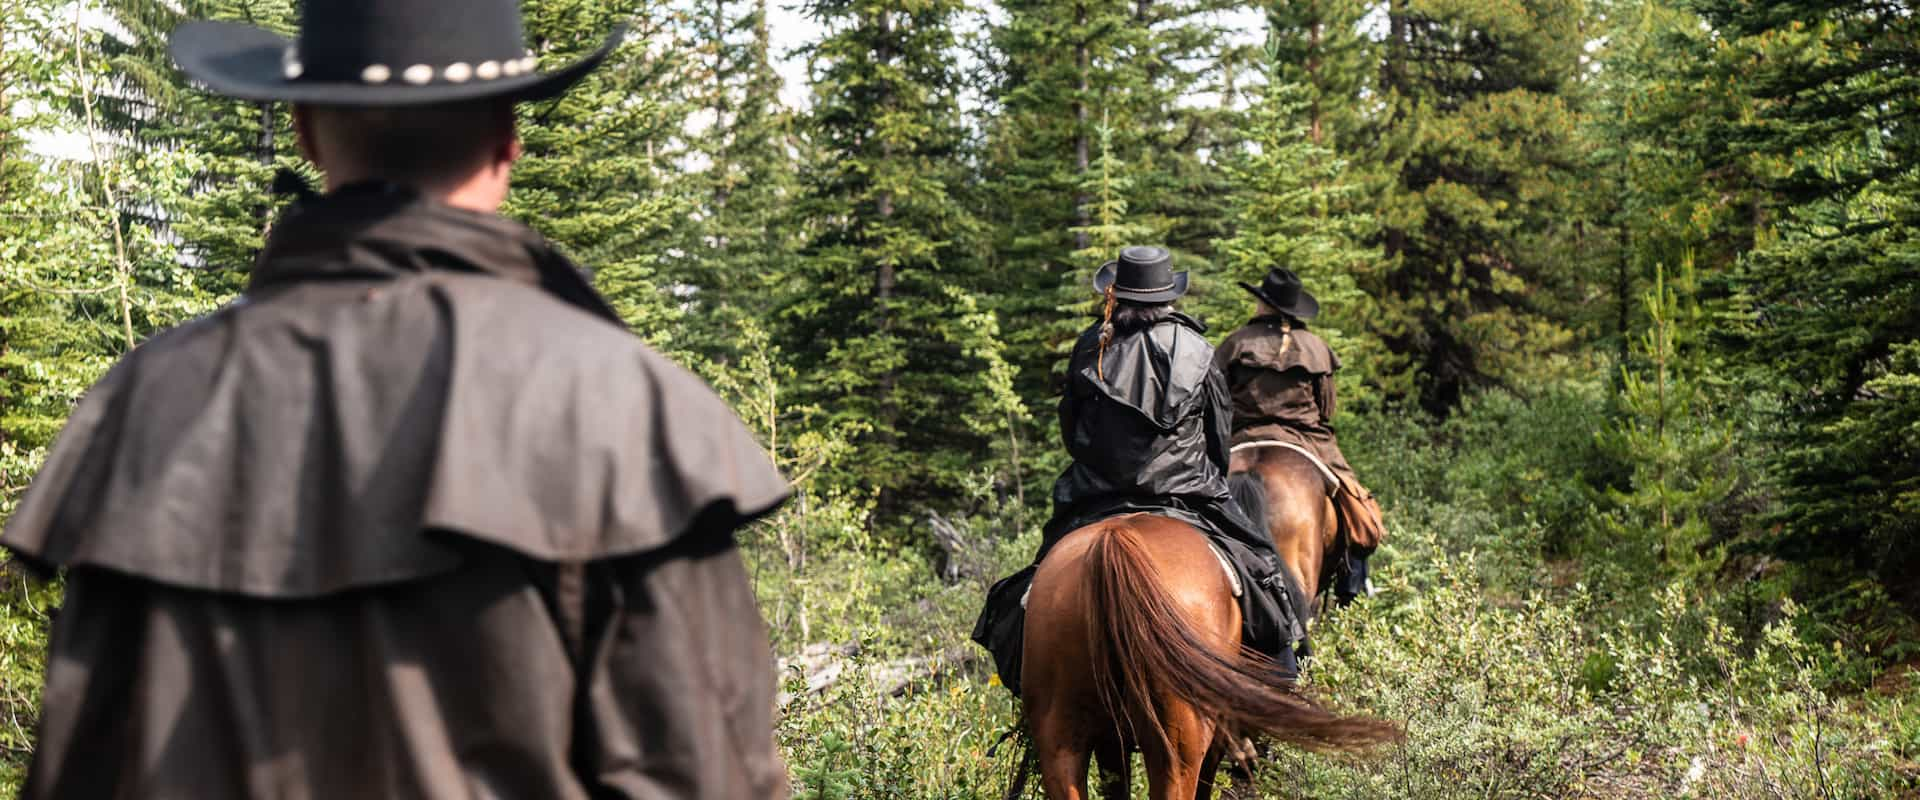 Soak in the scenery of Banff National Park on a backcountry trip